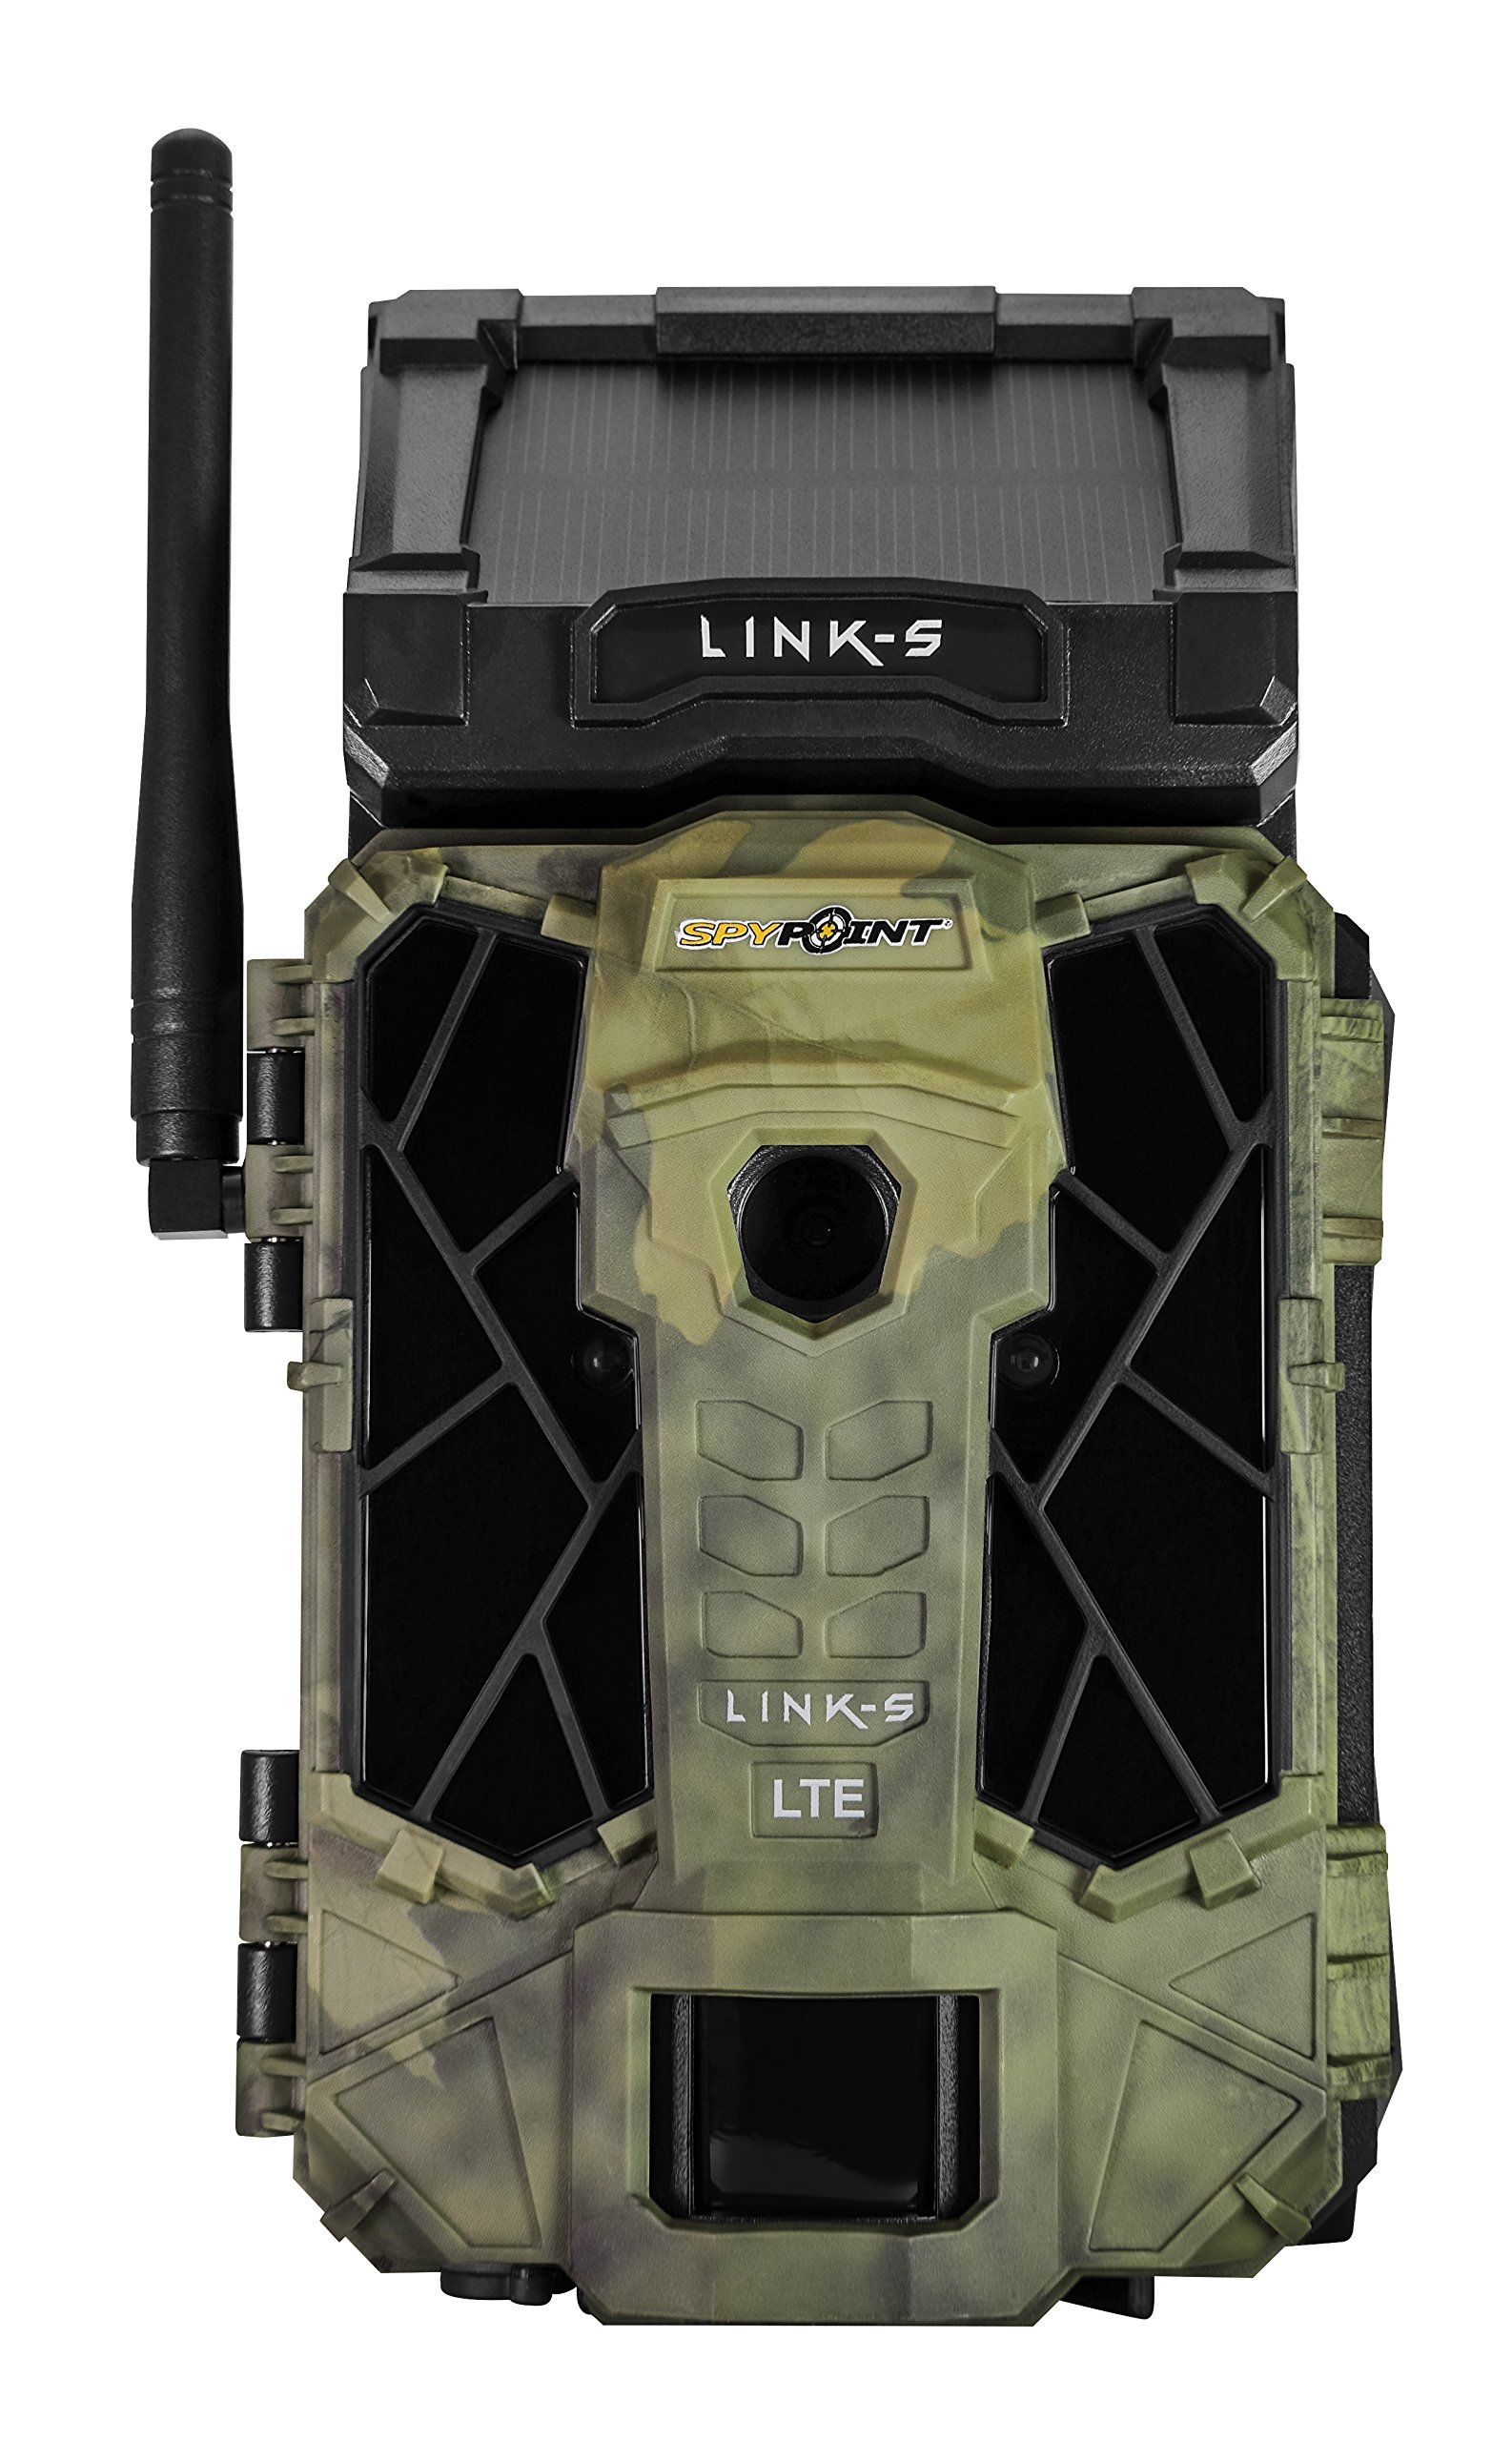 Spypoint LINK-S AT&T Solar Cellular Trail Camera, Camo by Spypoint